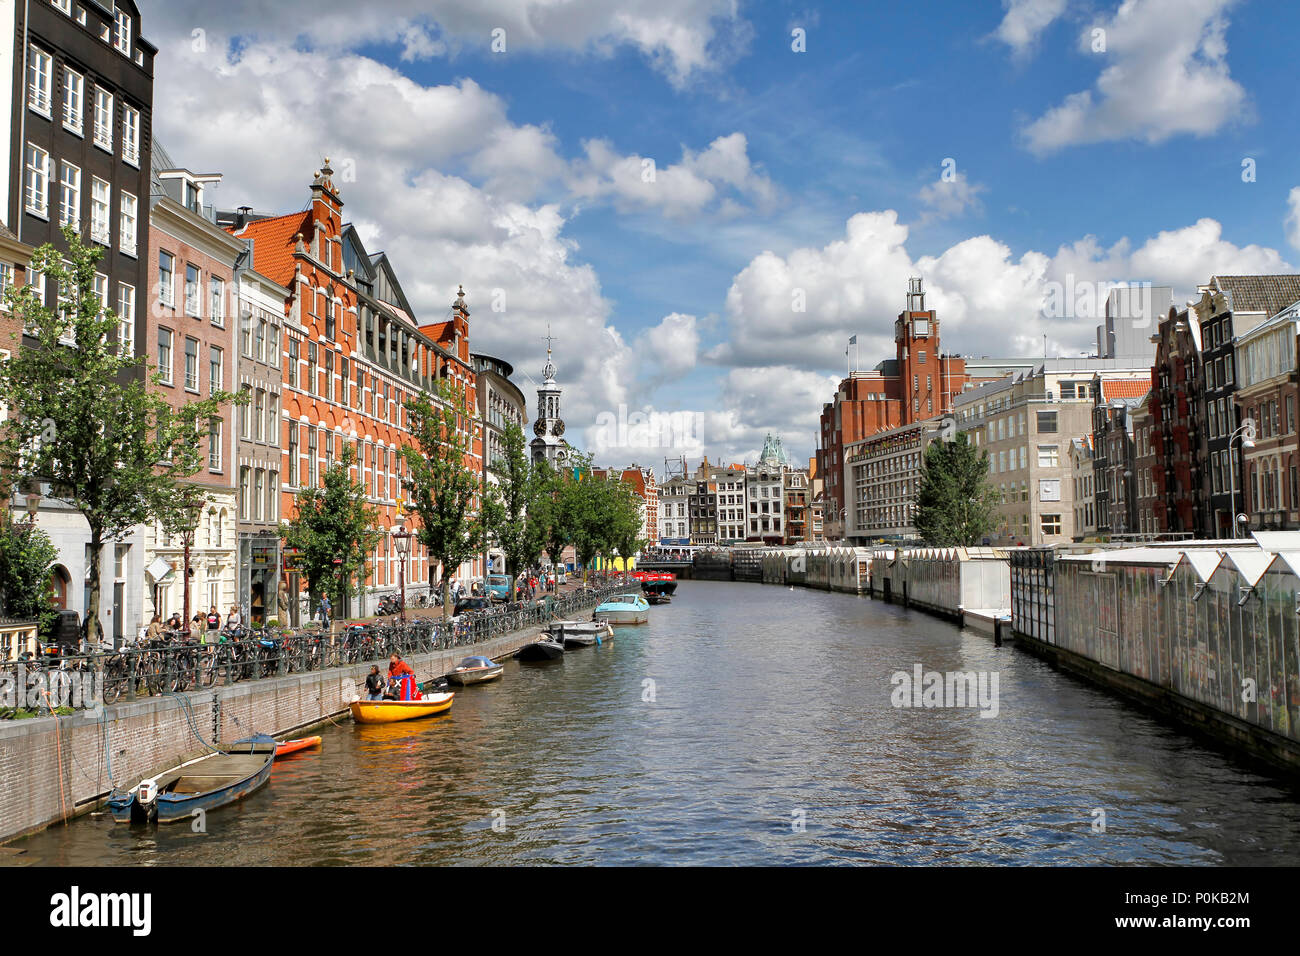 Wide angle photo from Flower Market (Bloemenmarkt), the world's only floating flower market founded in 1862, attracting many tourist from the world. Stock Photo